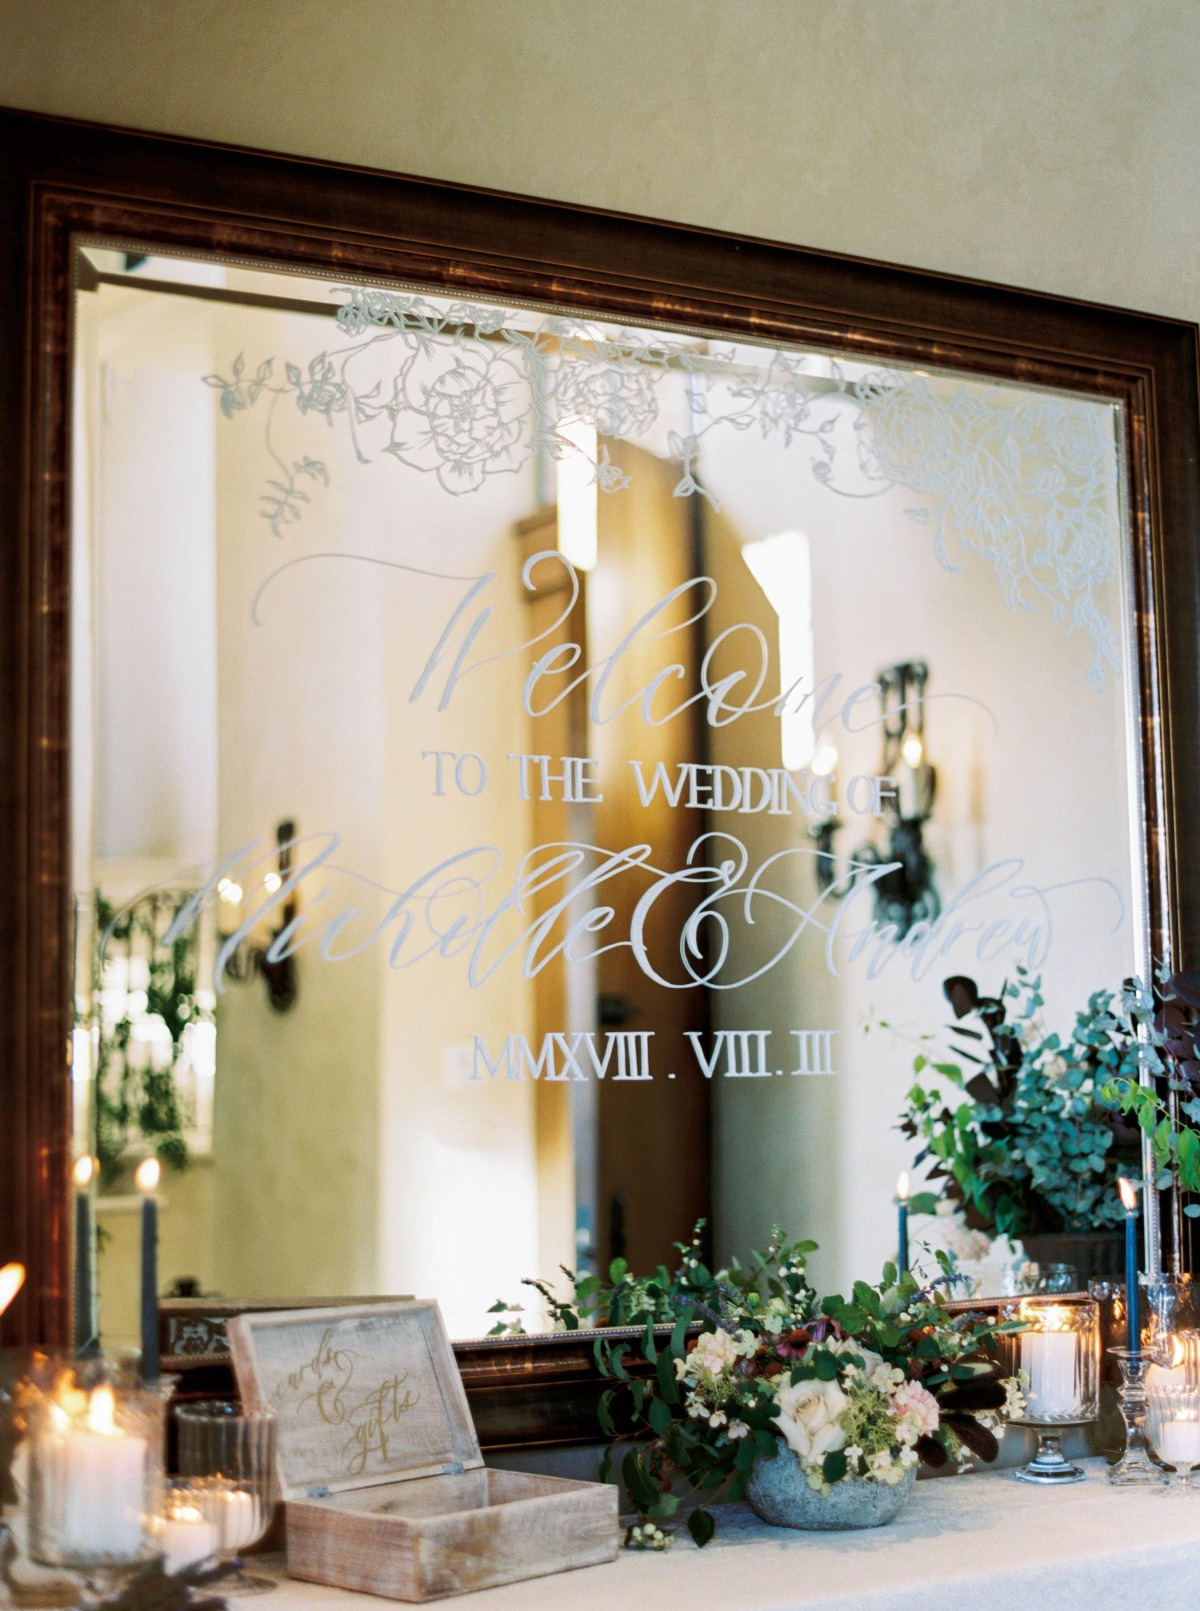 etched wedding mirror sign